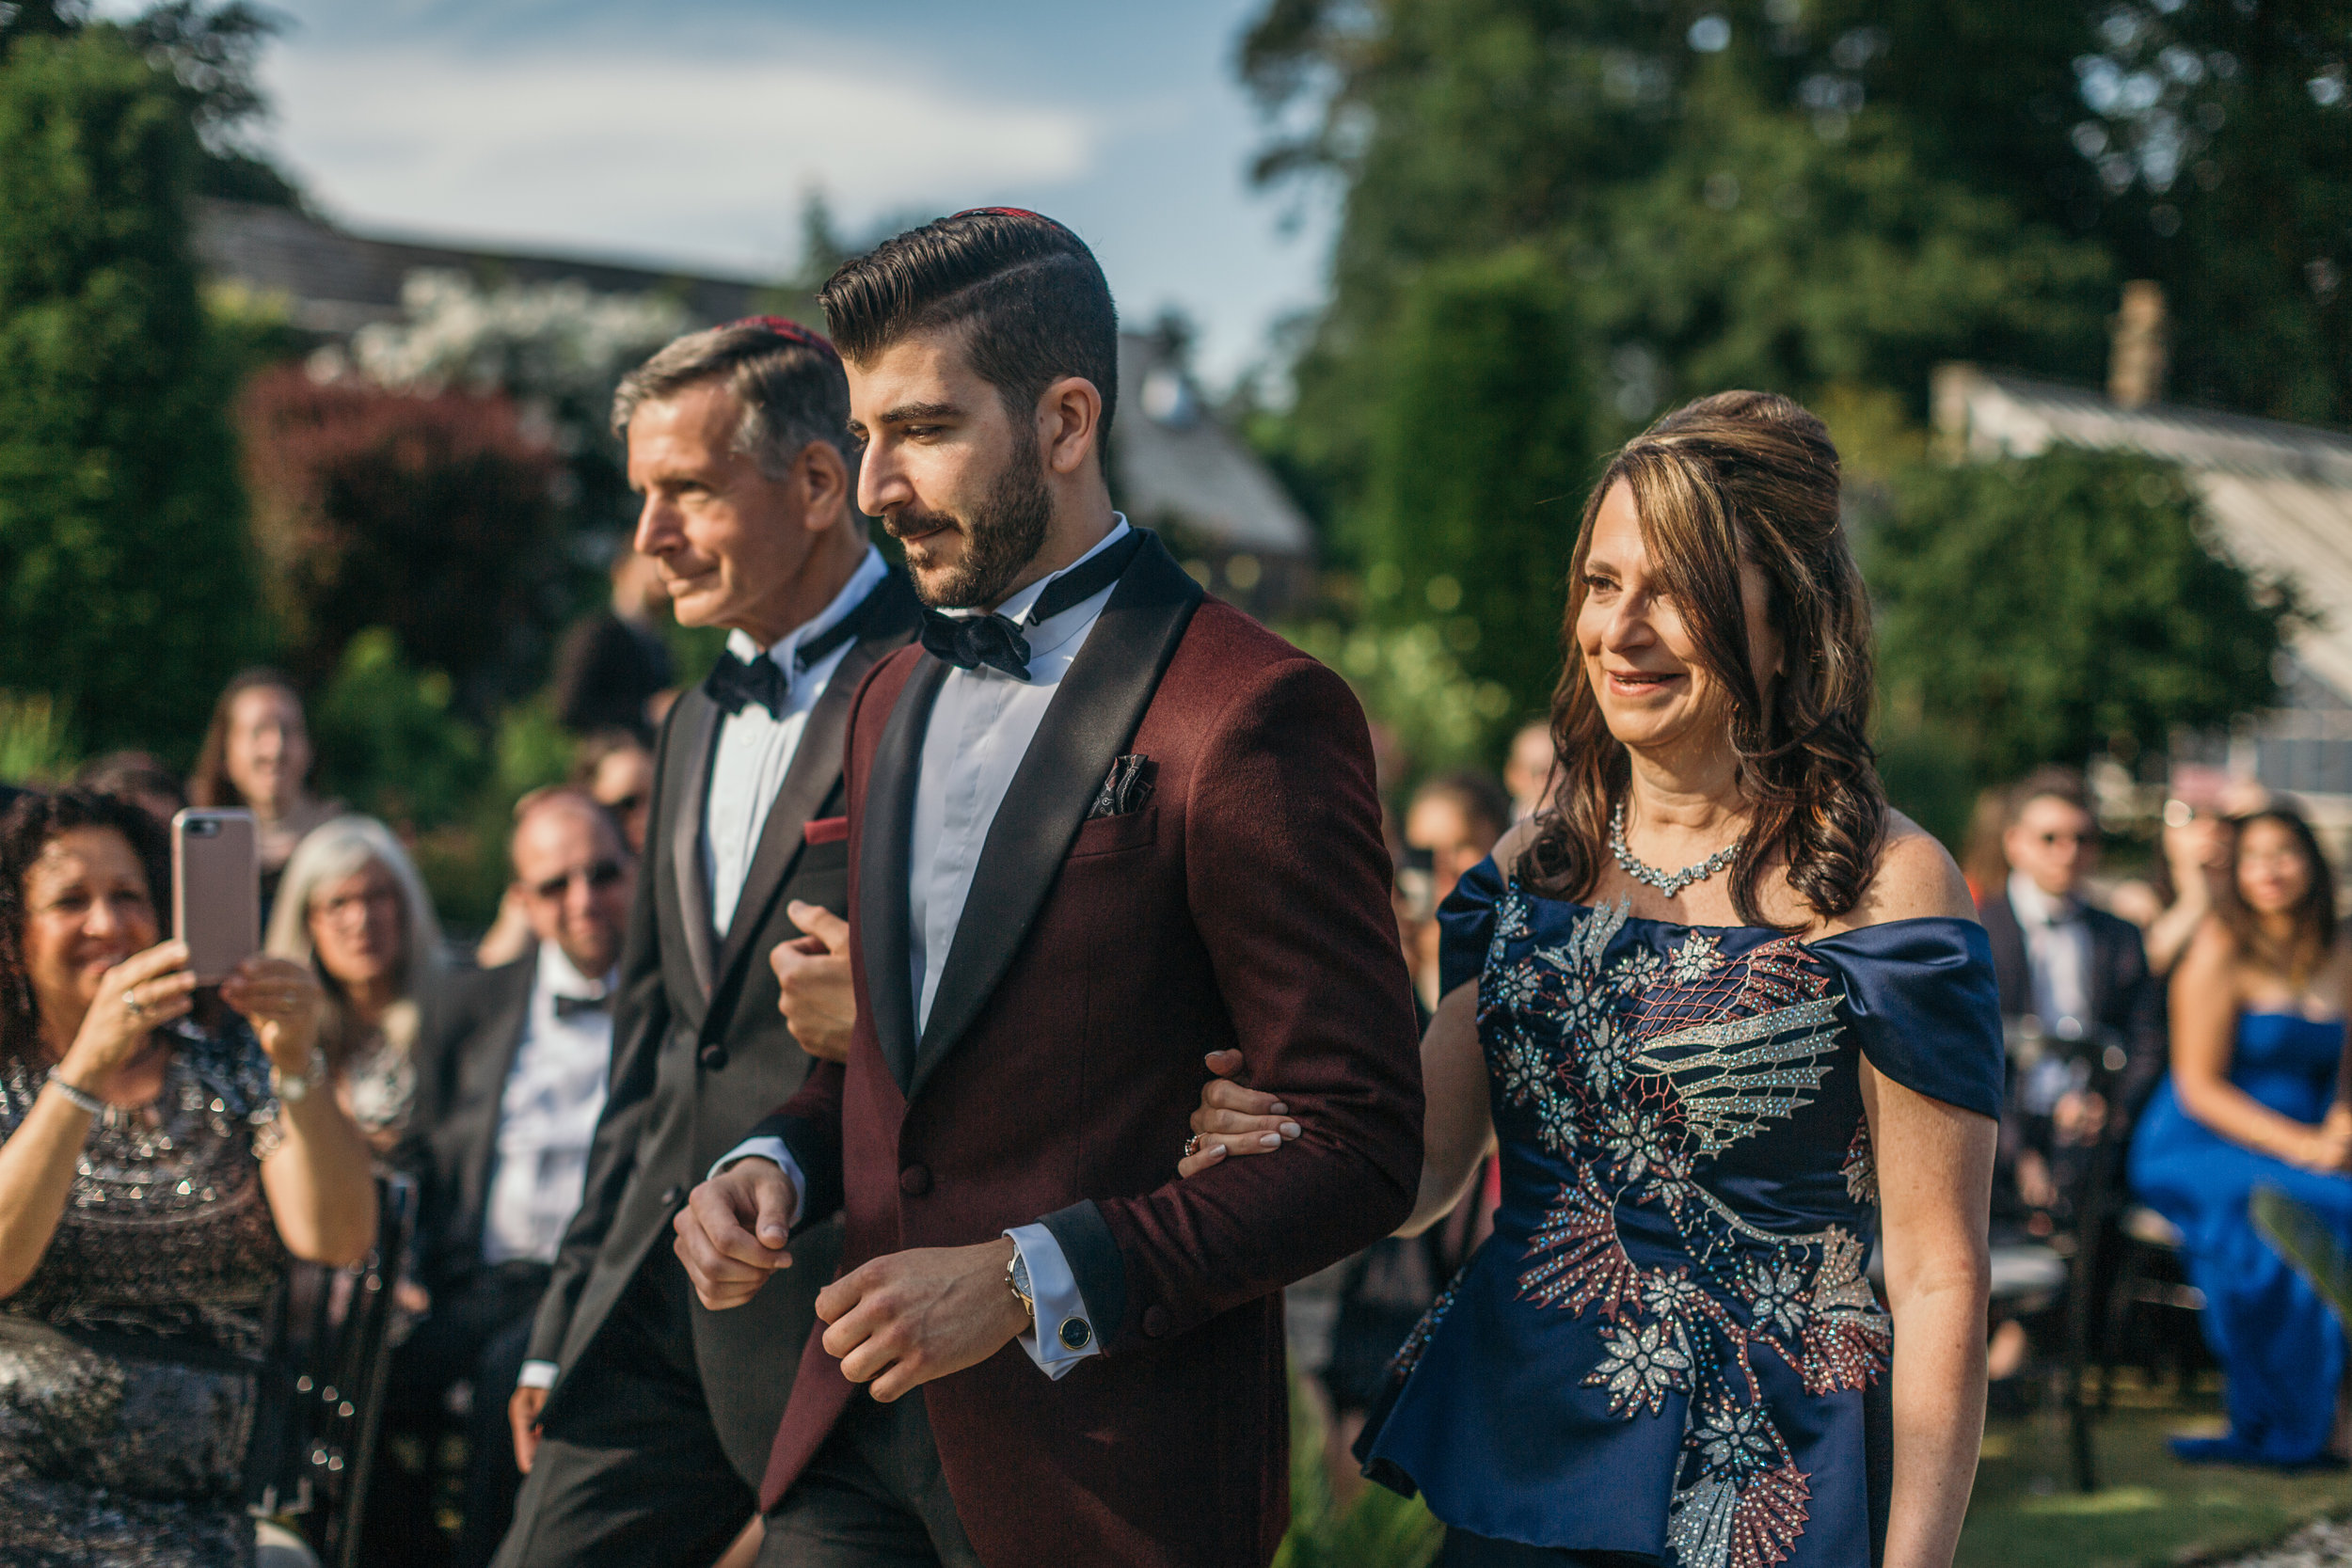 Groom walking down aisle with parents in Scotland castle outdoor destination wedding